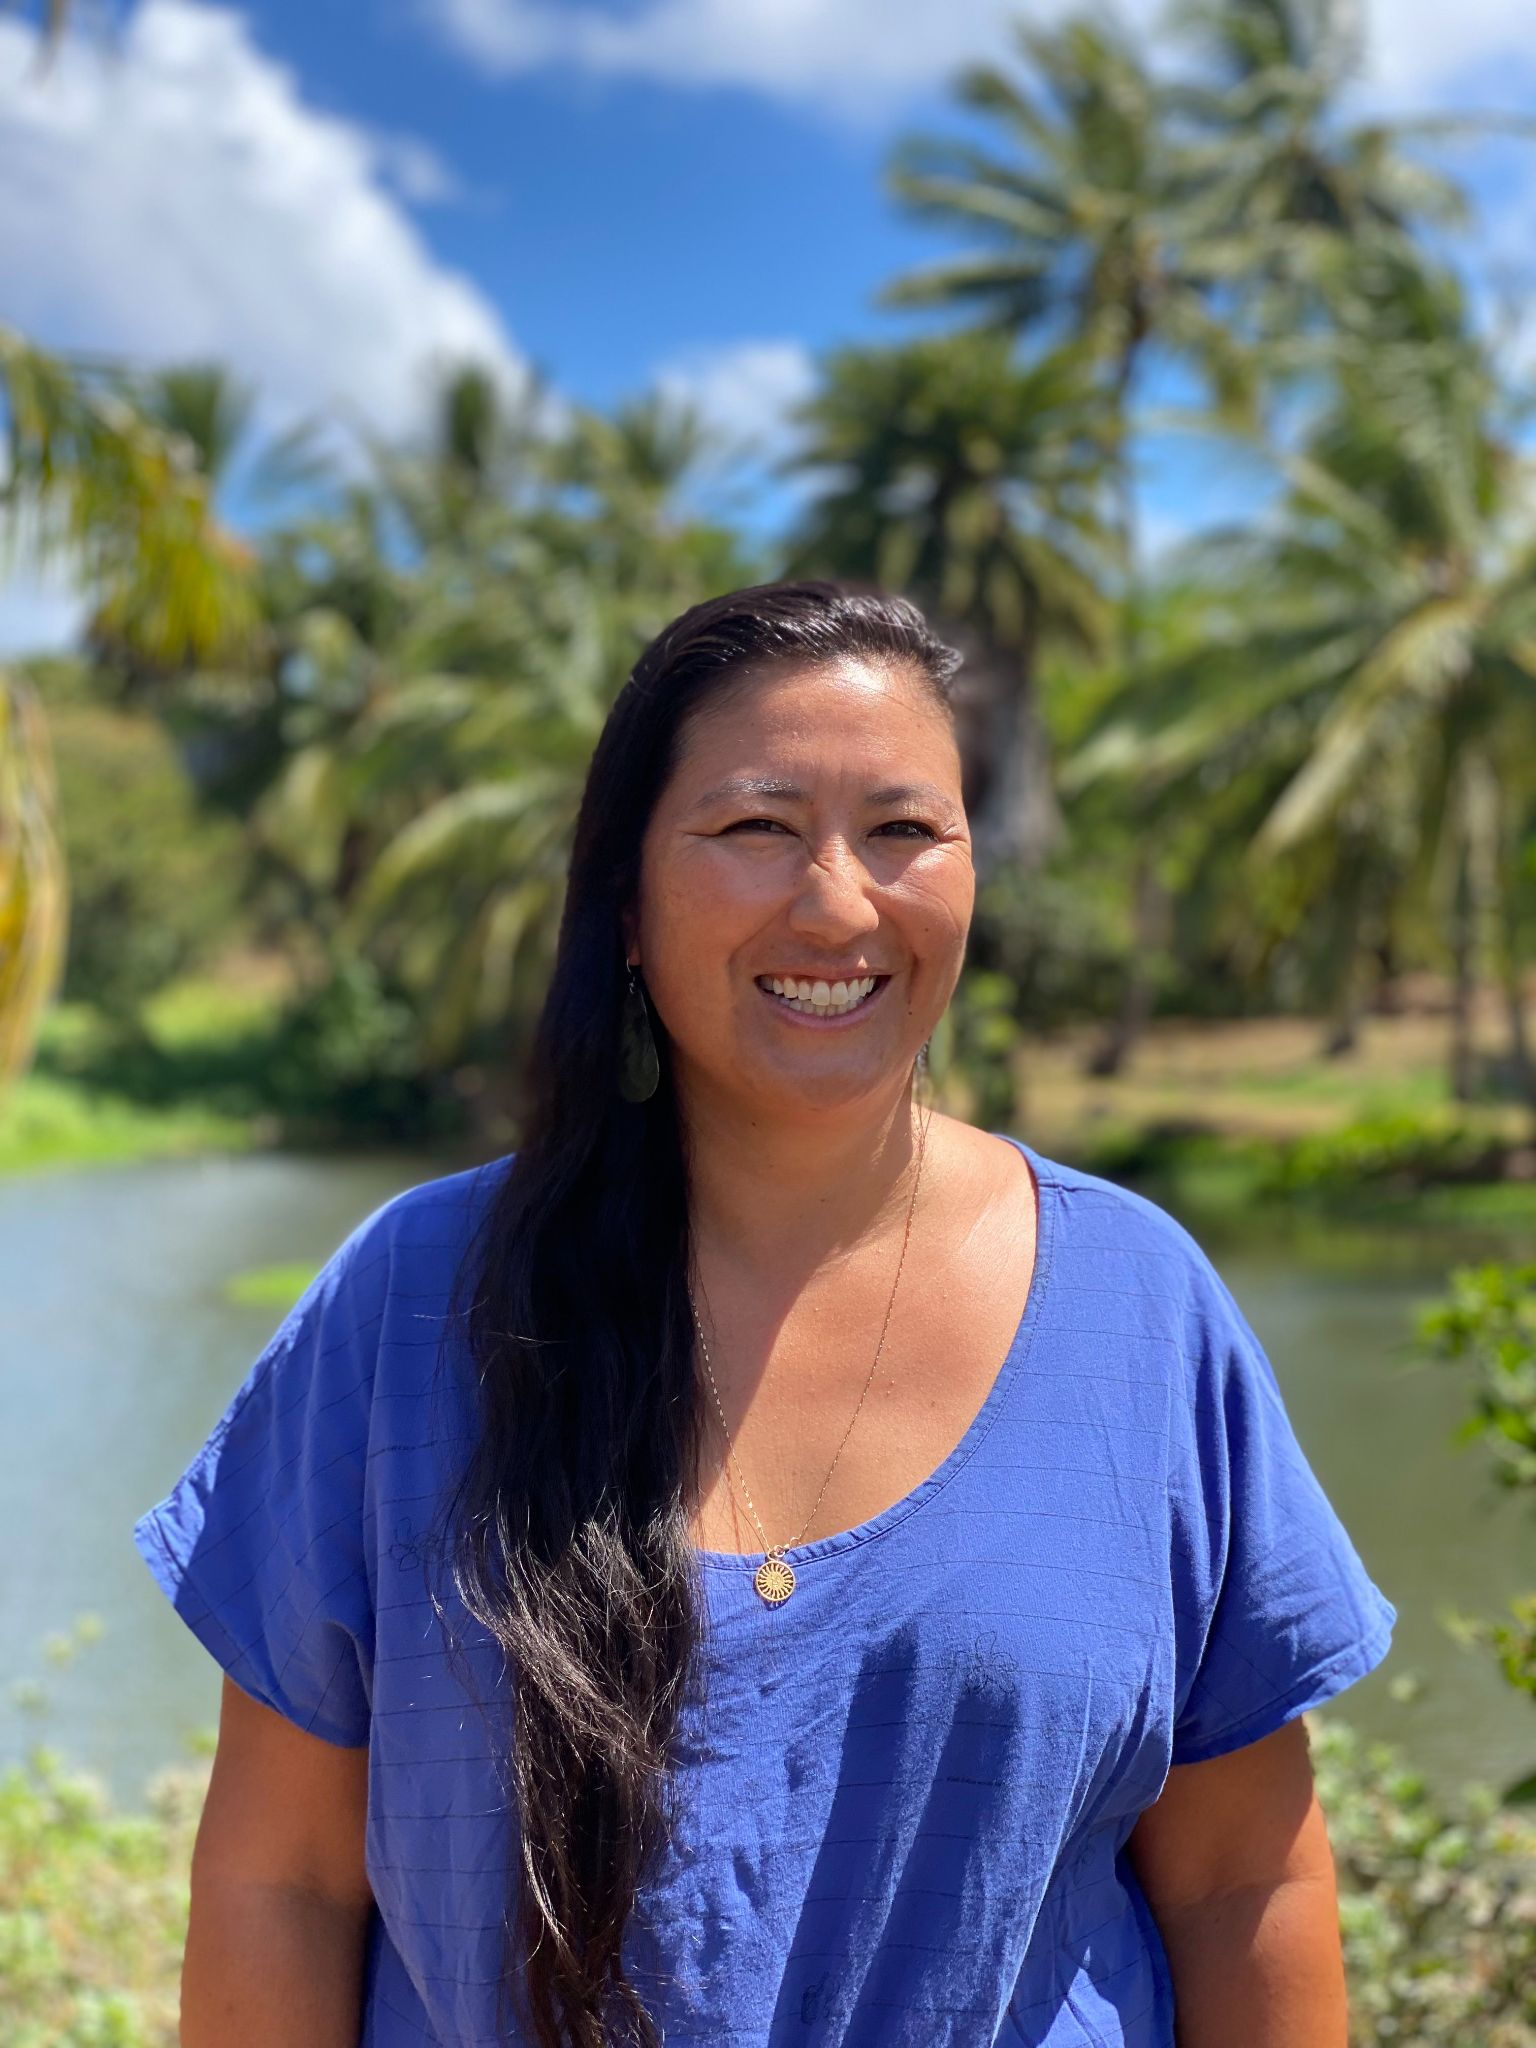 A woman with long, dark hair in a blue shirt smiles at the camera in front of a pond and palm trees.